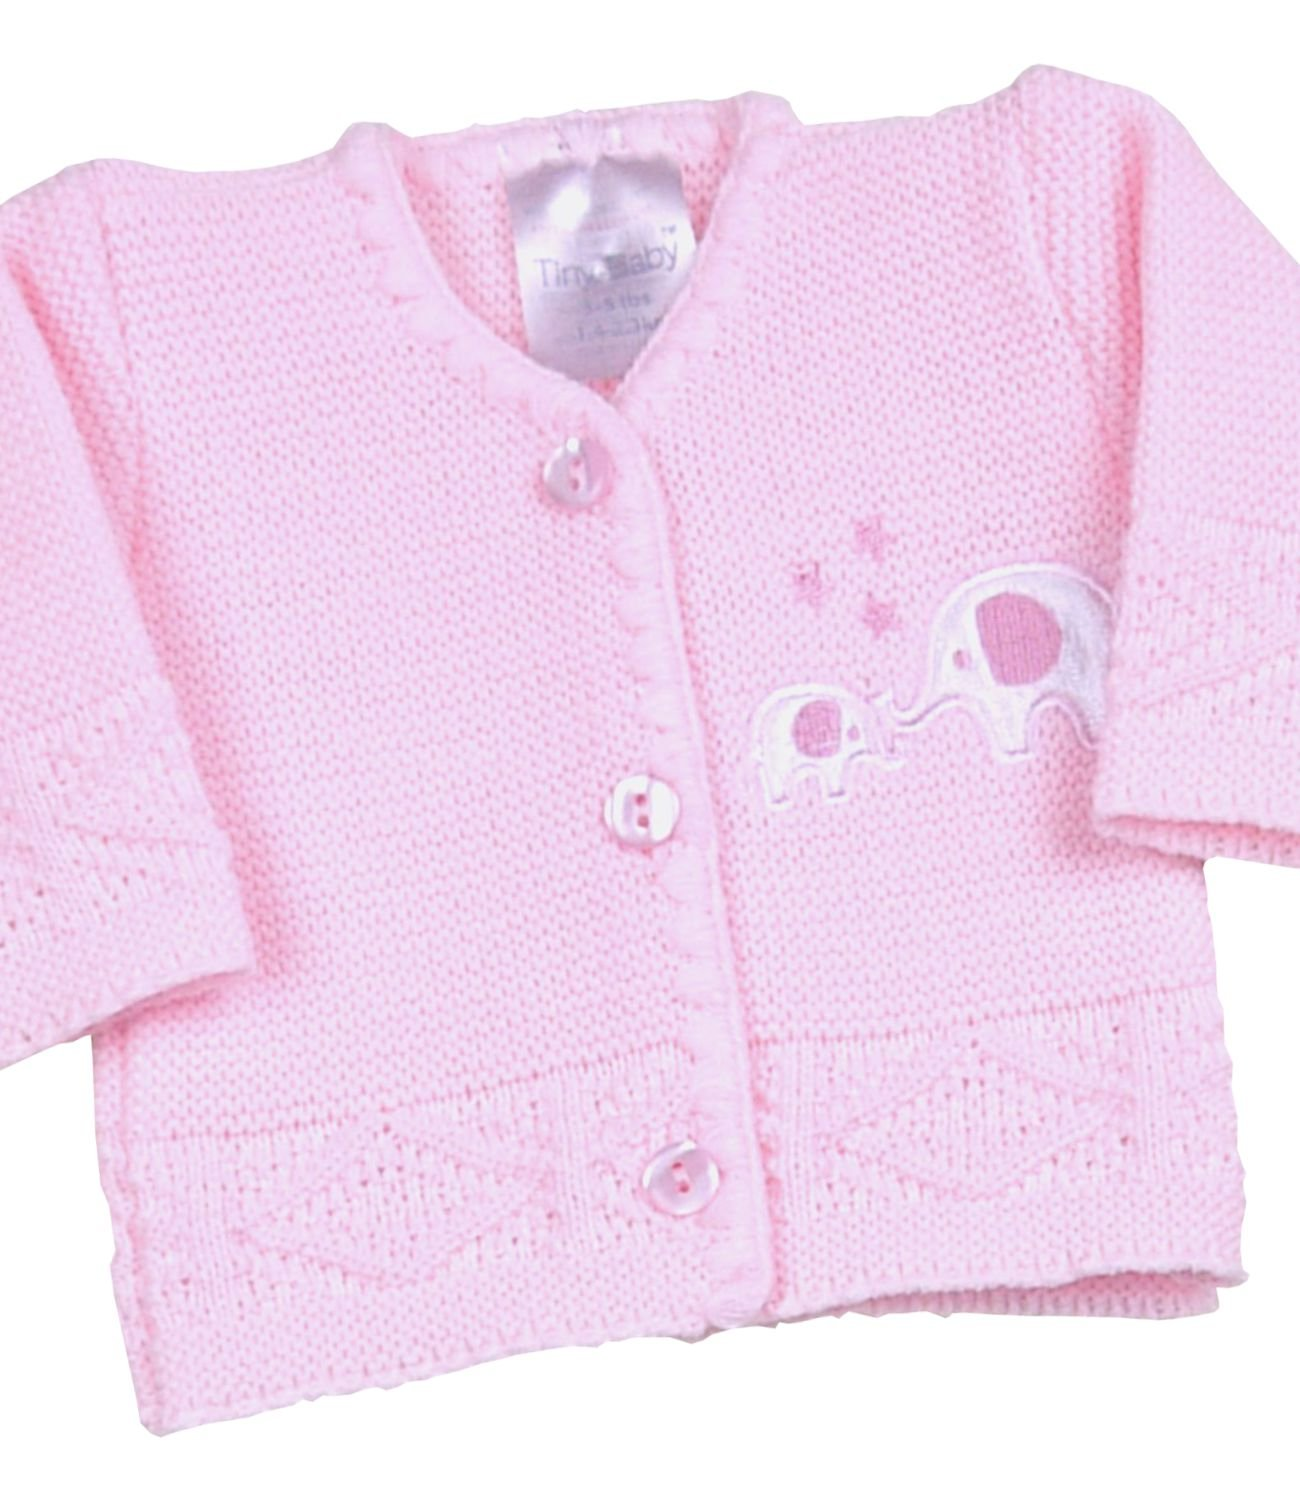 BabyPrem Premature Baby Cardigan Jacket Boy Girl Buttons Knitted Elephant 3-8lb SLD118